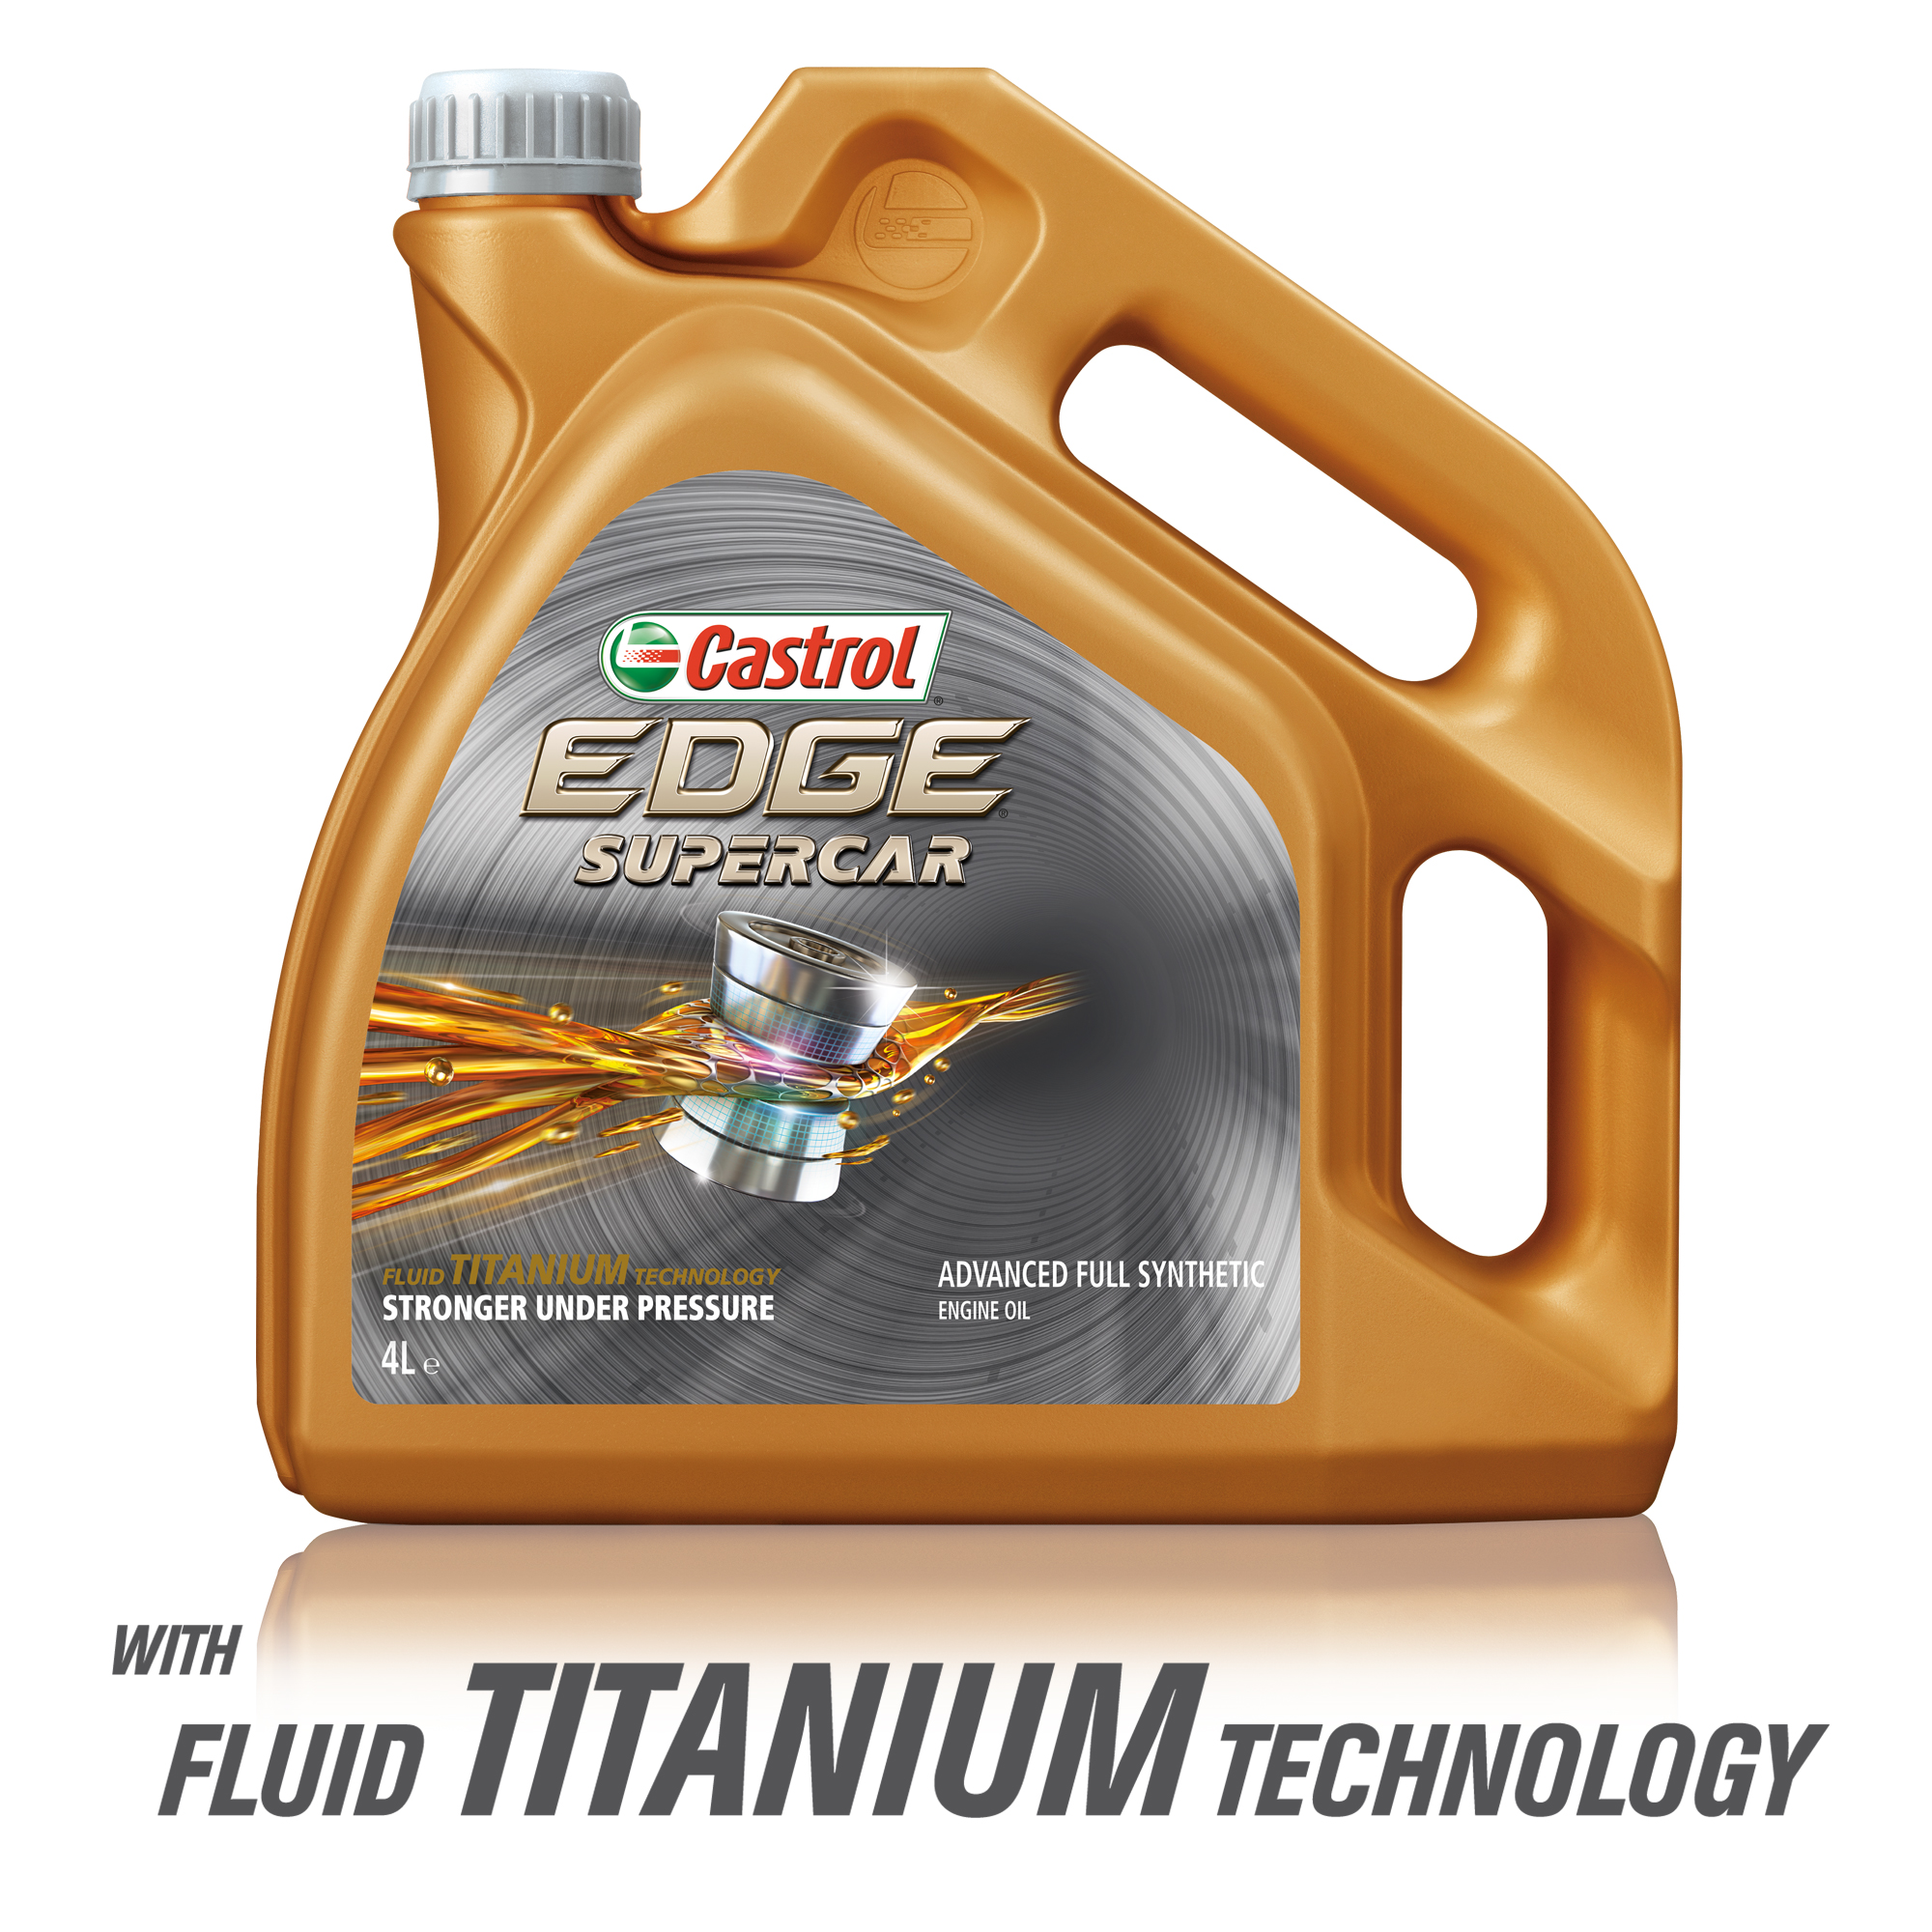 Castrol EDGE SUPERCAR 10W-60